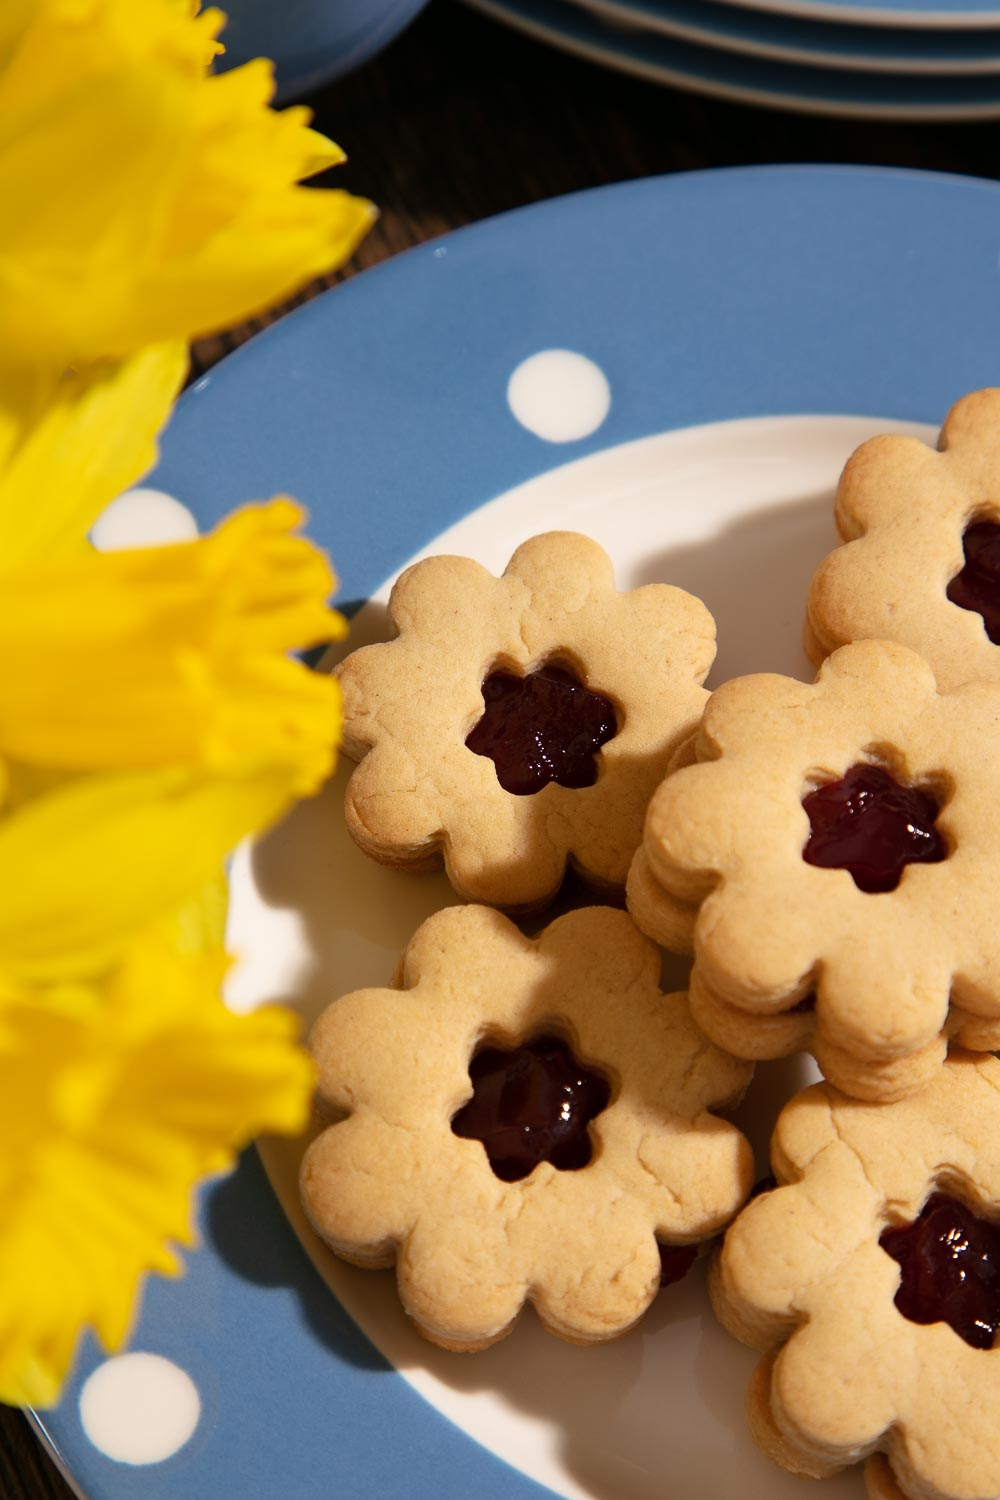 Homemade Jammy Dodgers on a blue and white spotty plate with a bunch of daffodils.